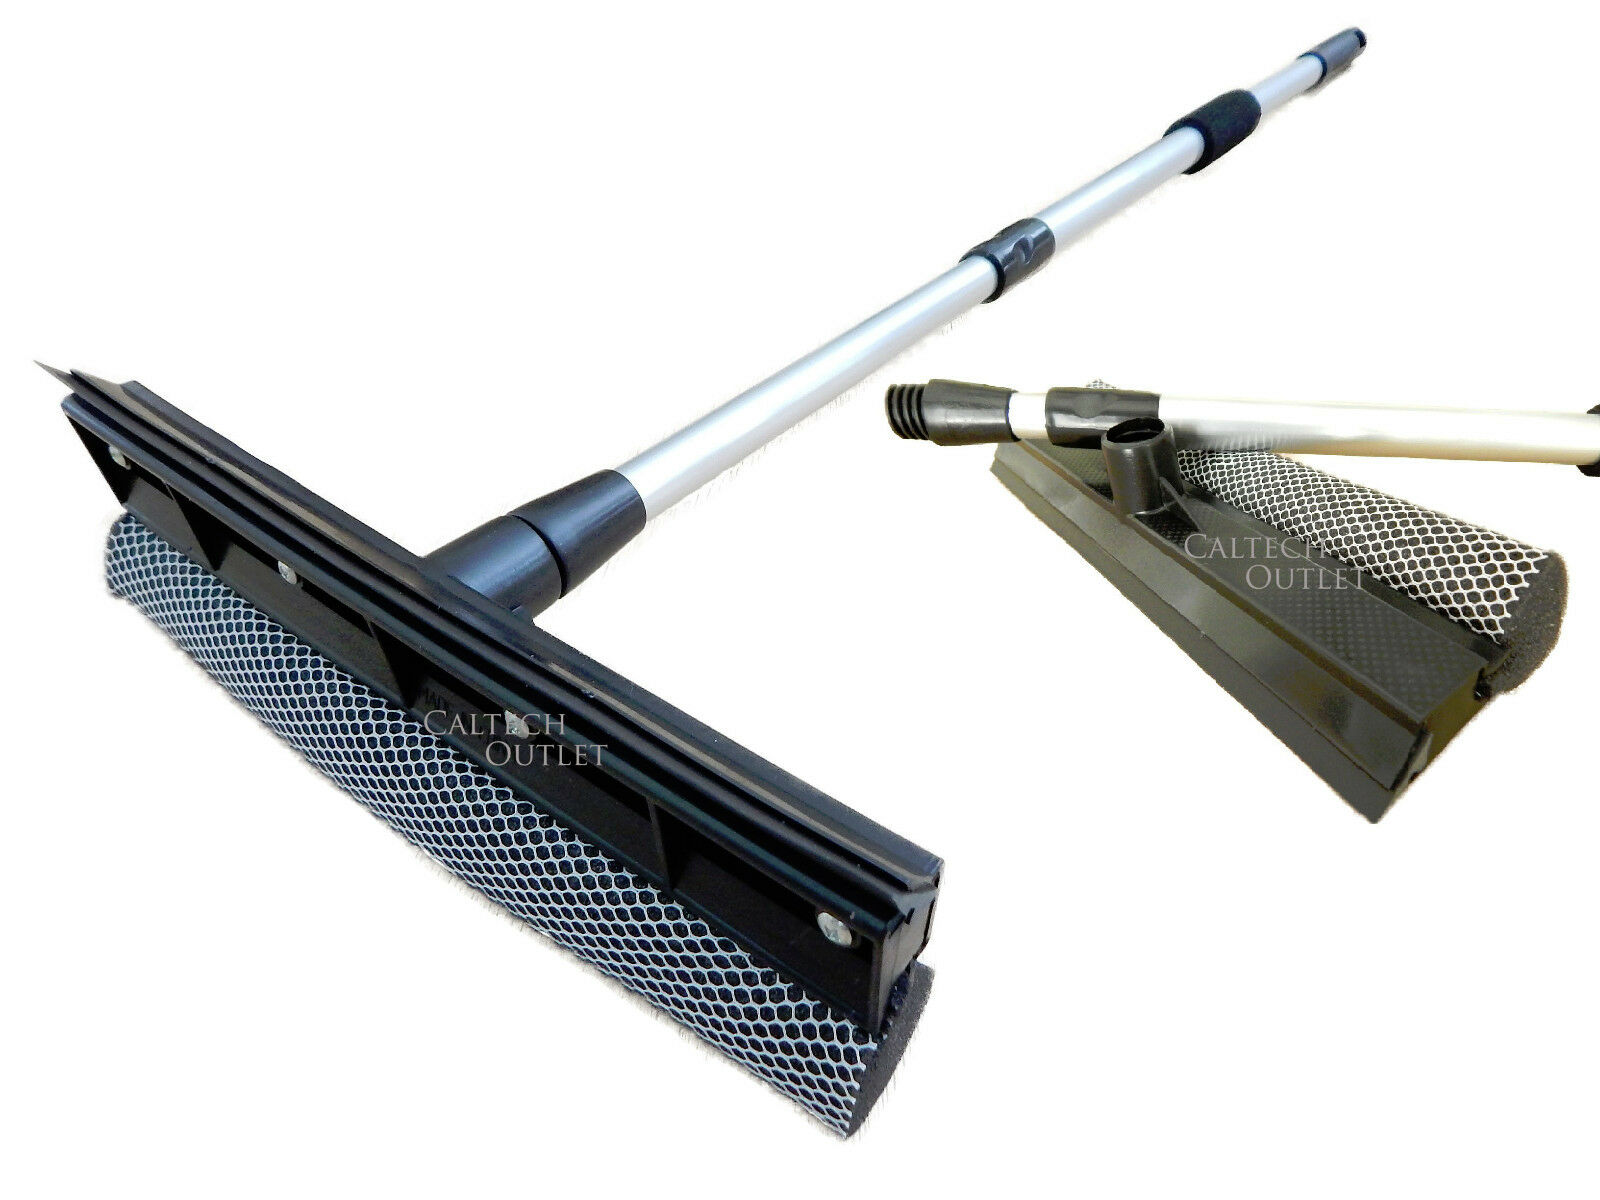 telescopic extendable window squeegee long handle washer